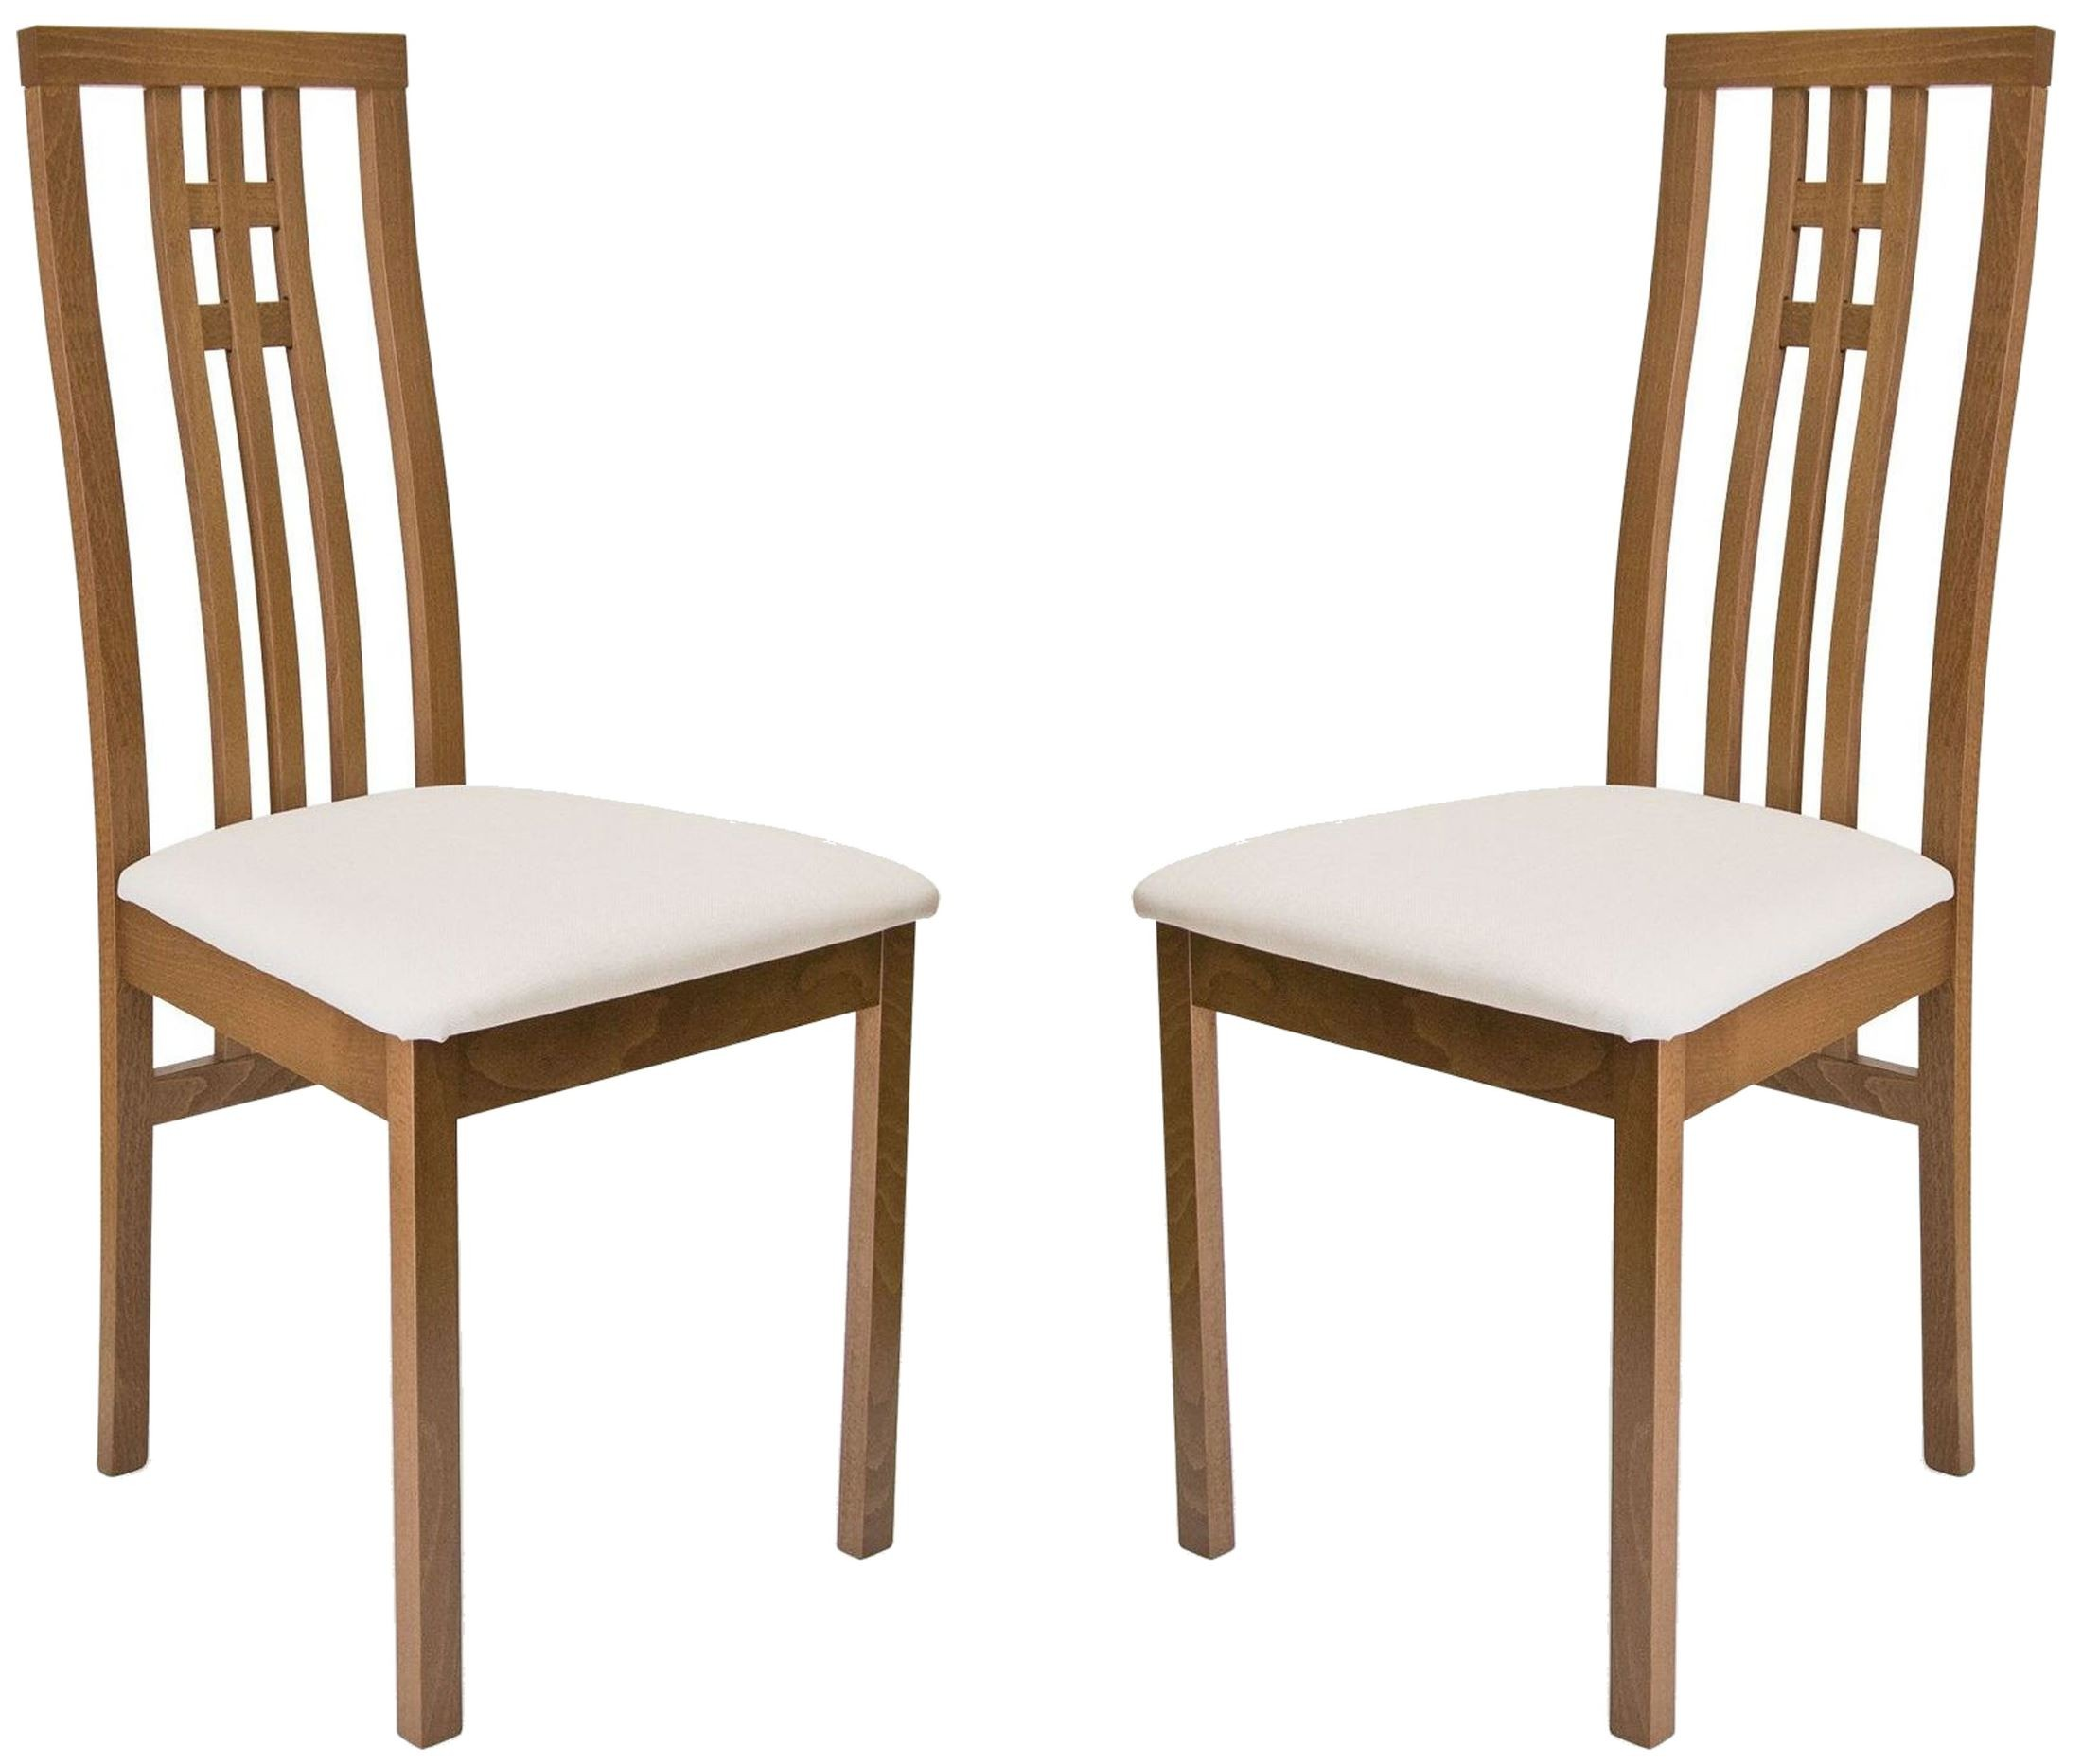 Beechwood district walnut dining chair set of 2 from aeon for District 8 furniture